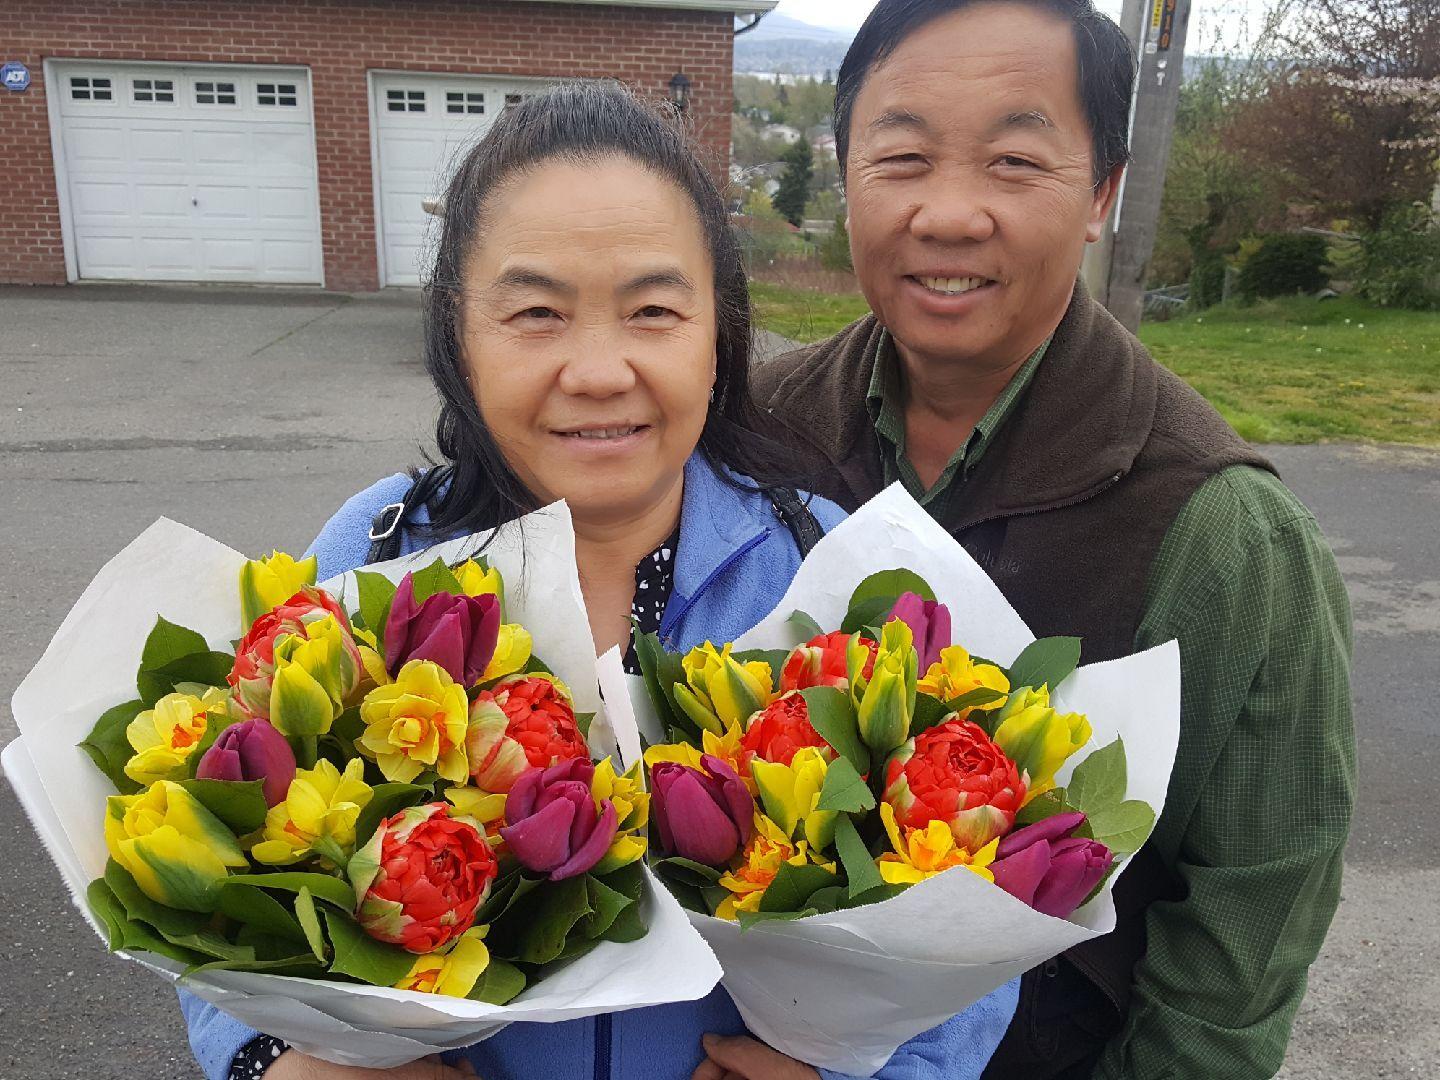 (L-R) Xai Cha and Kher Lia Thao, owners and operators of Xai C. Farm | Courtesy of Mary Thao